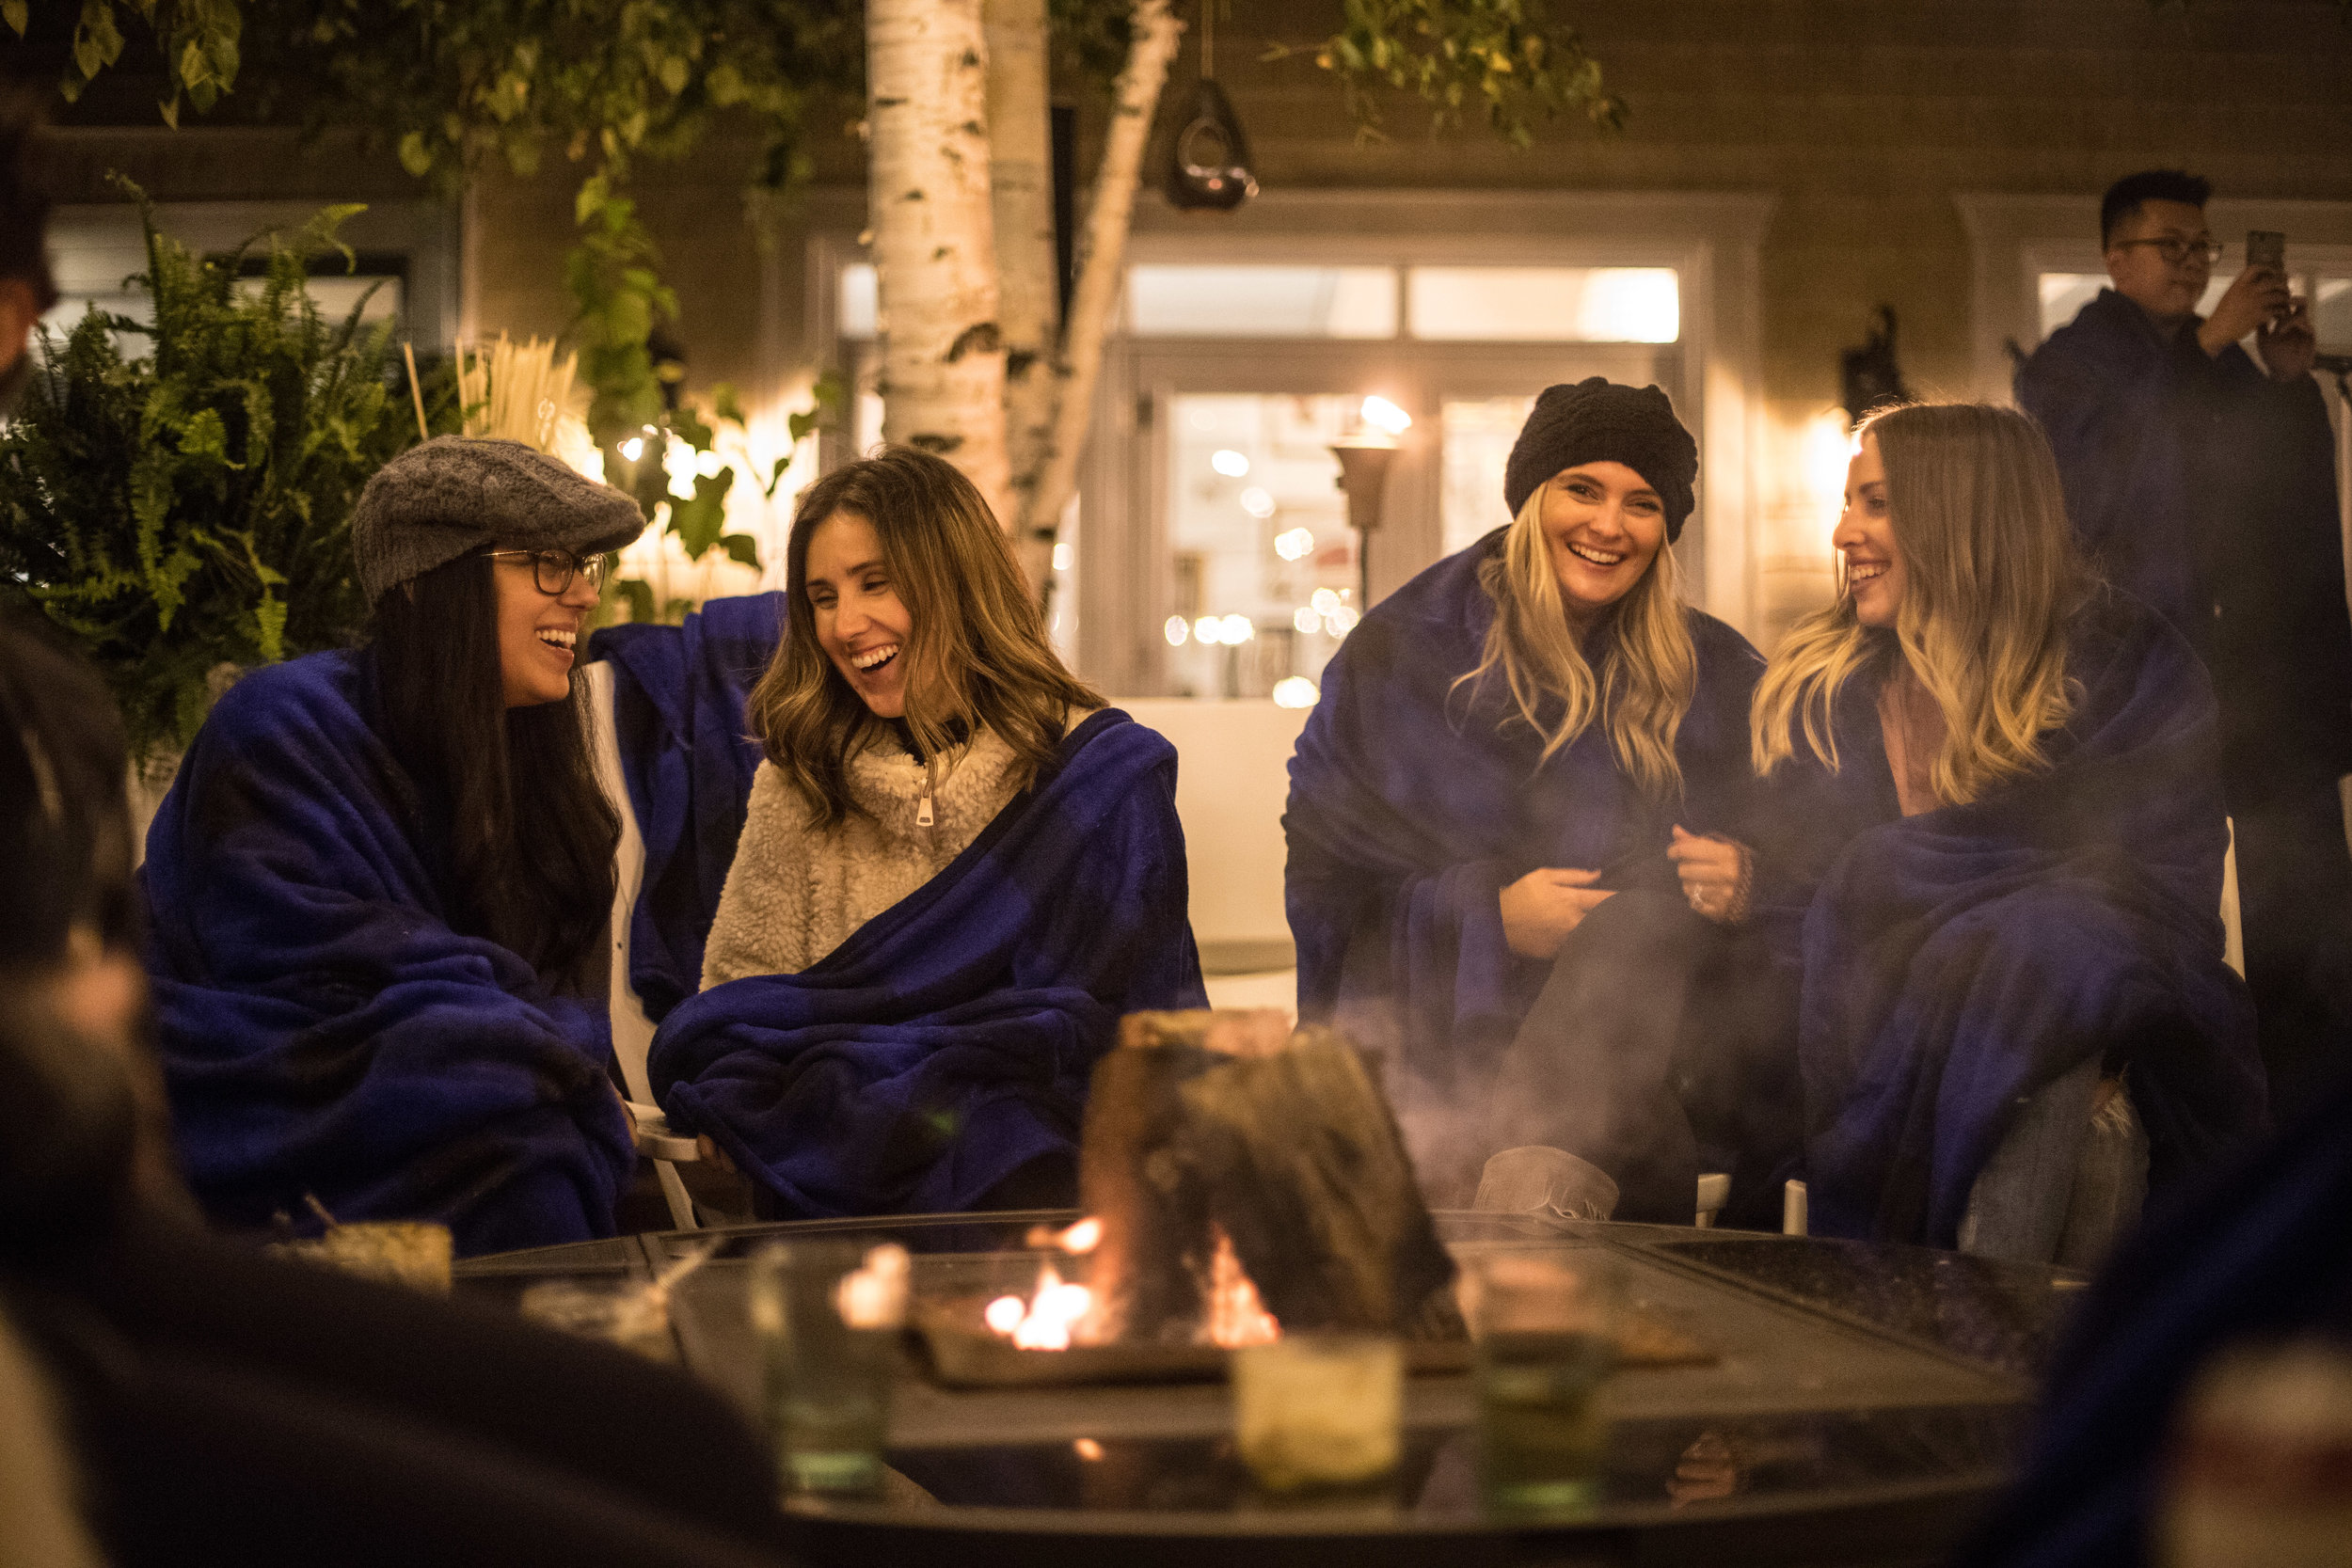 Keeping Warm by the Fire Pit (Photo by  @thejupiterspin )